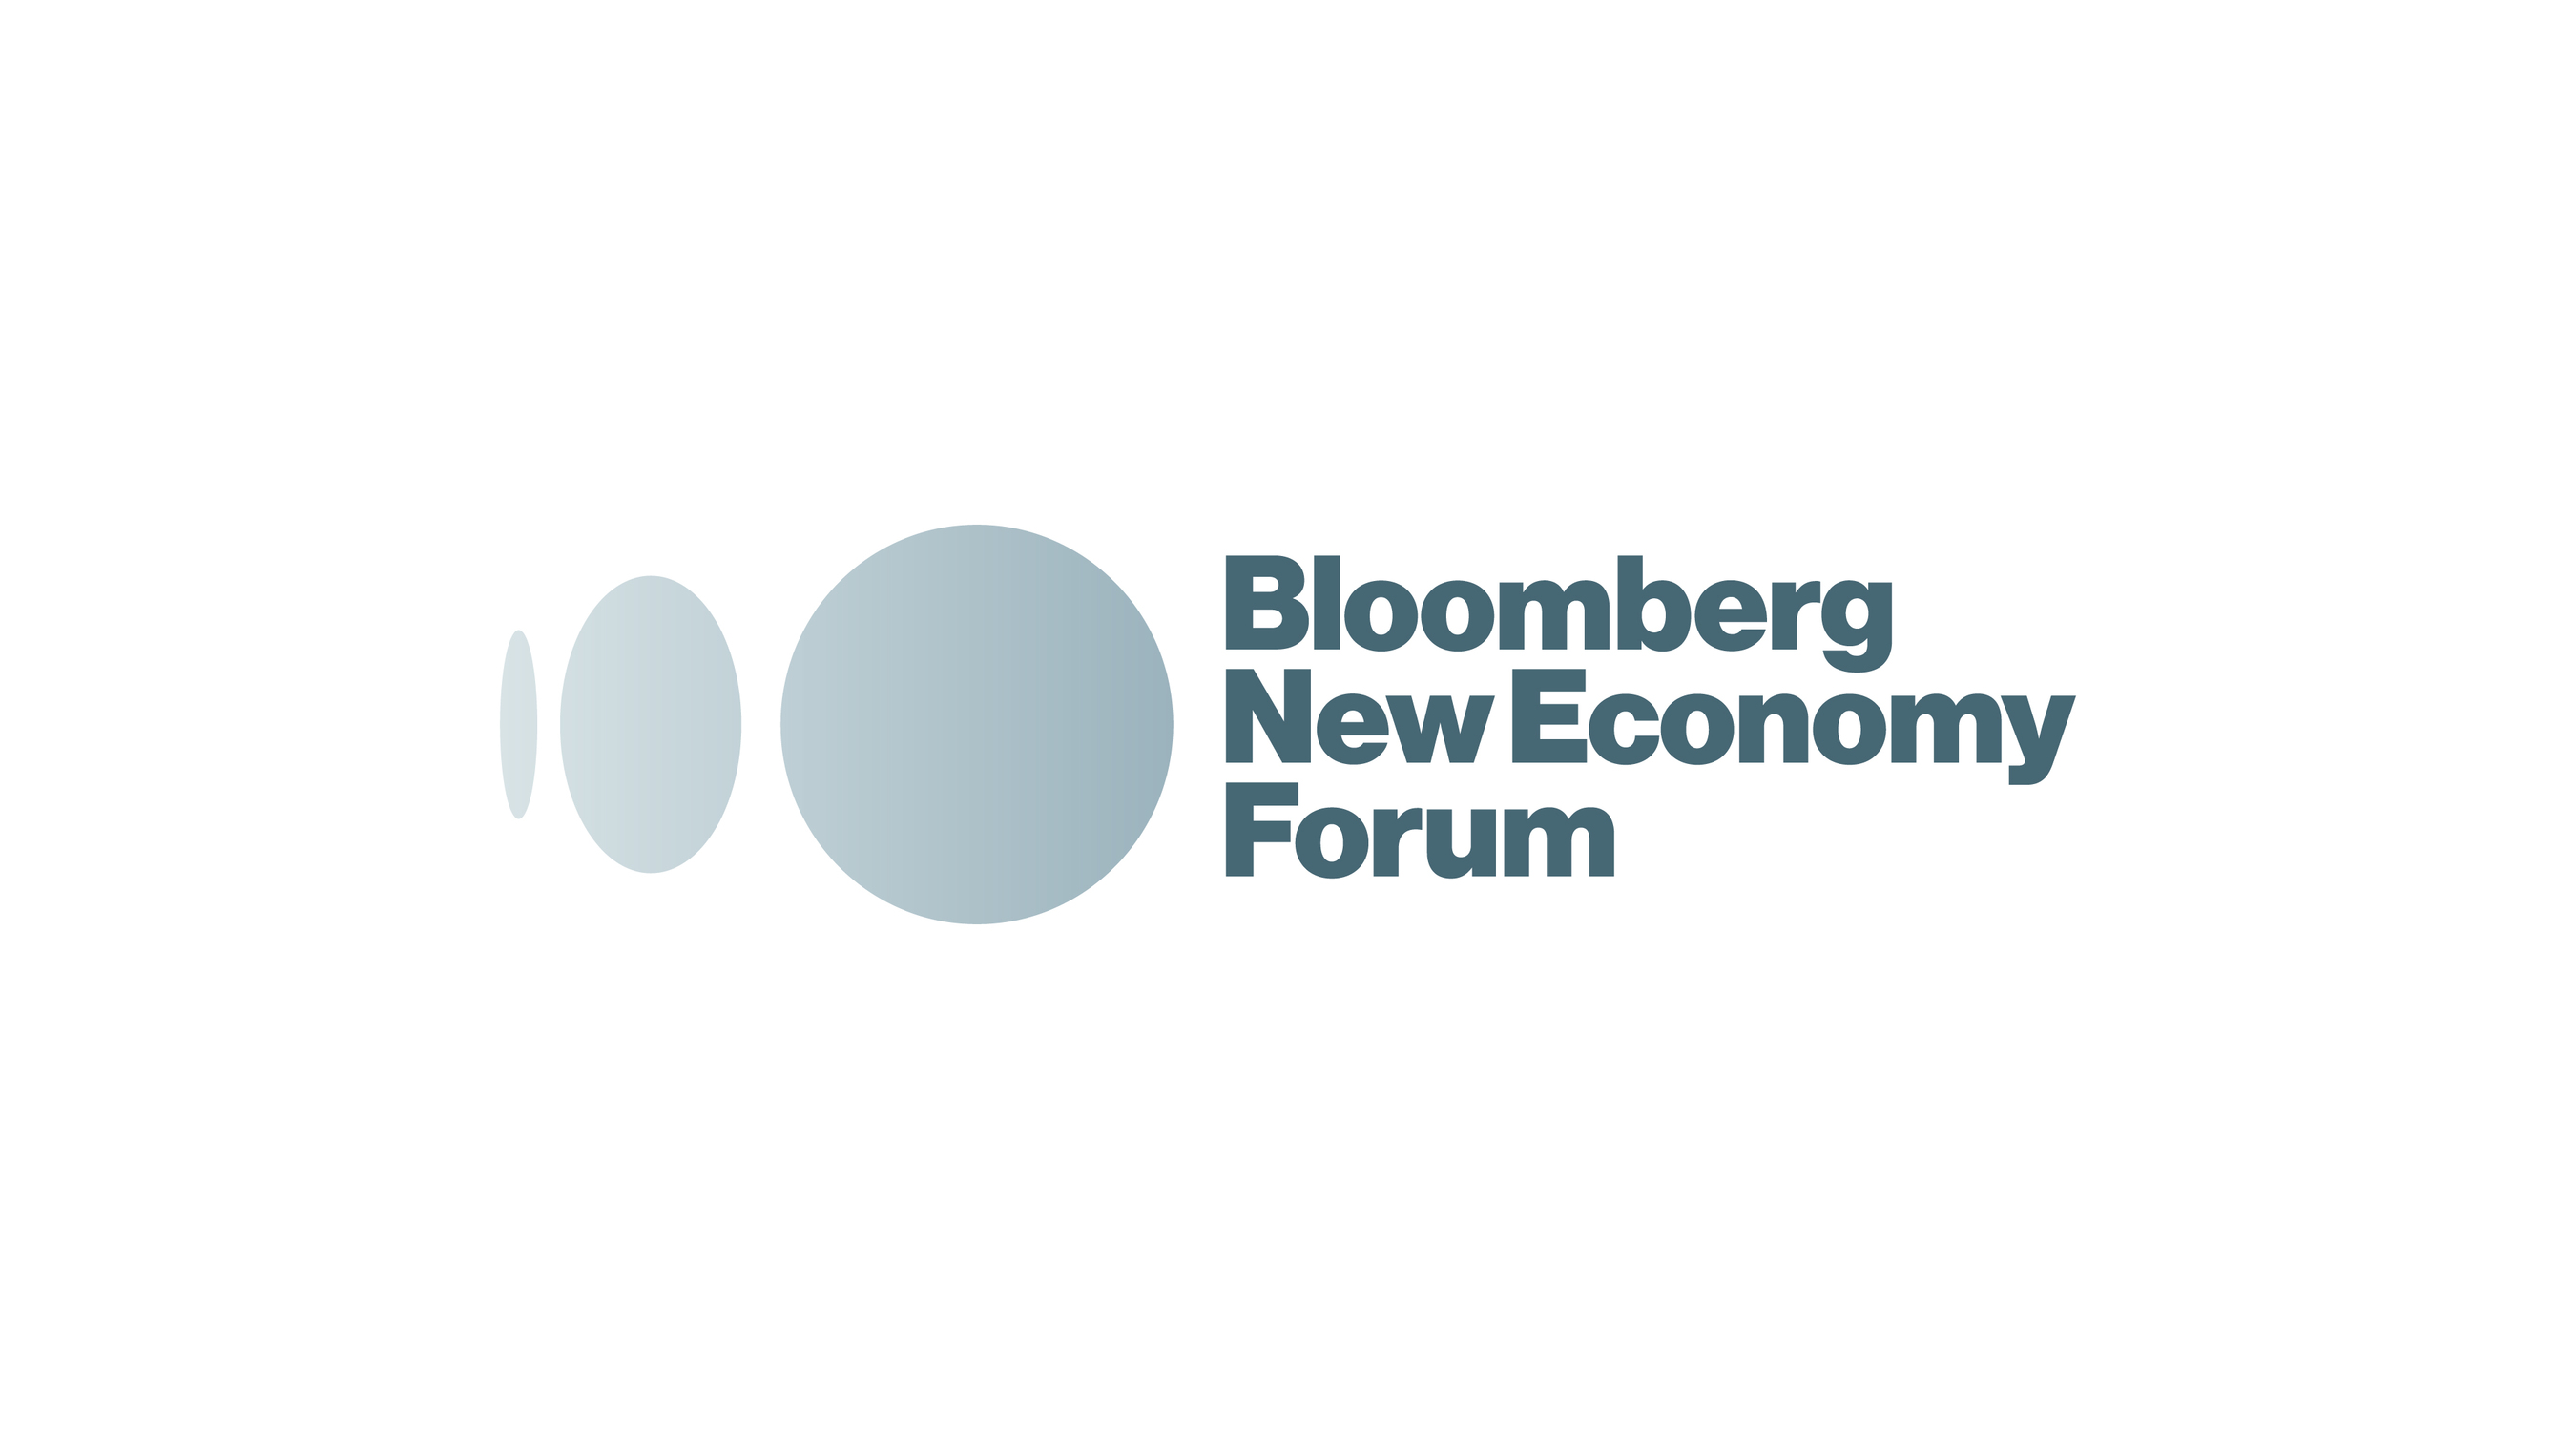 New Economy Forum will be held in Beijing, China from November 6-8, 2018.